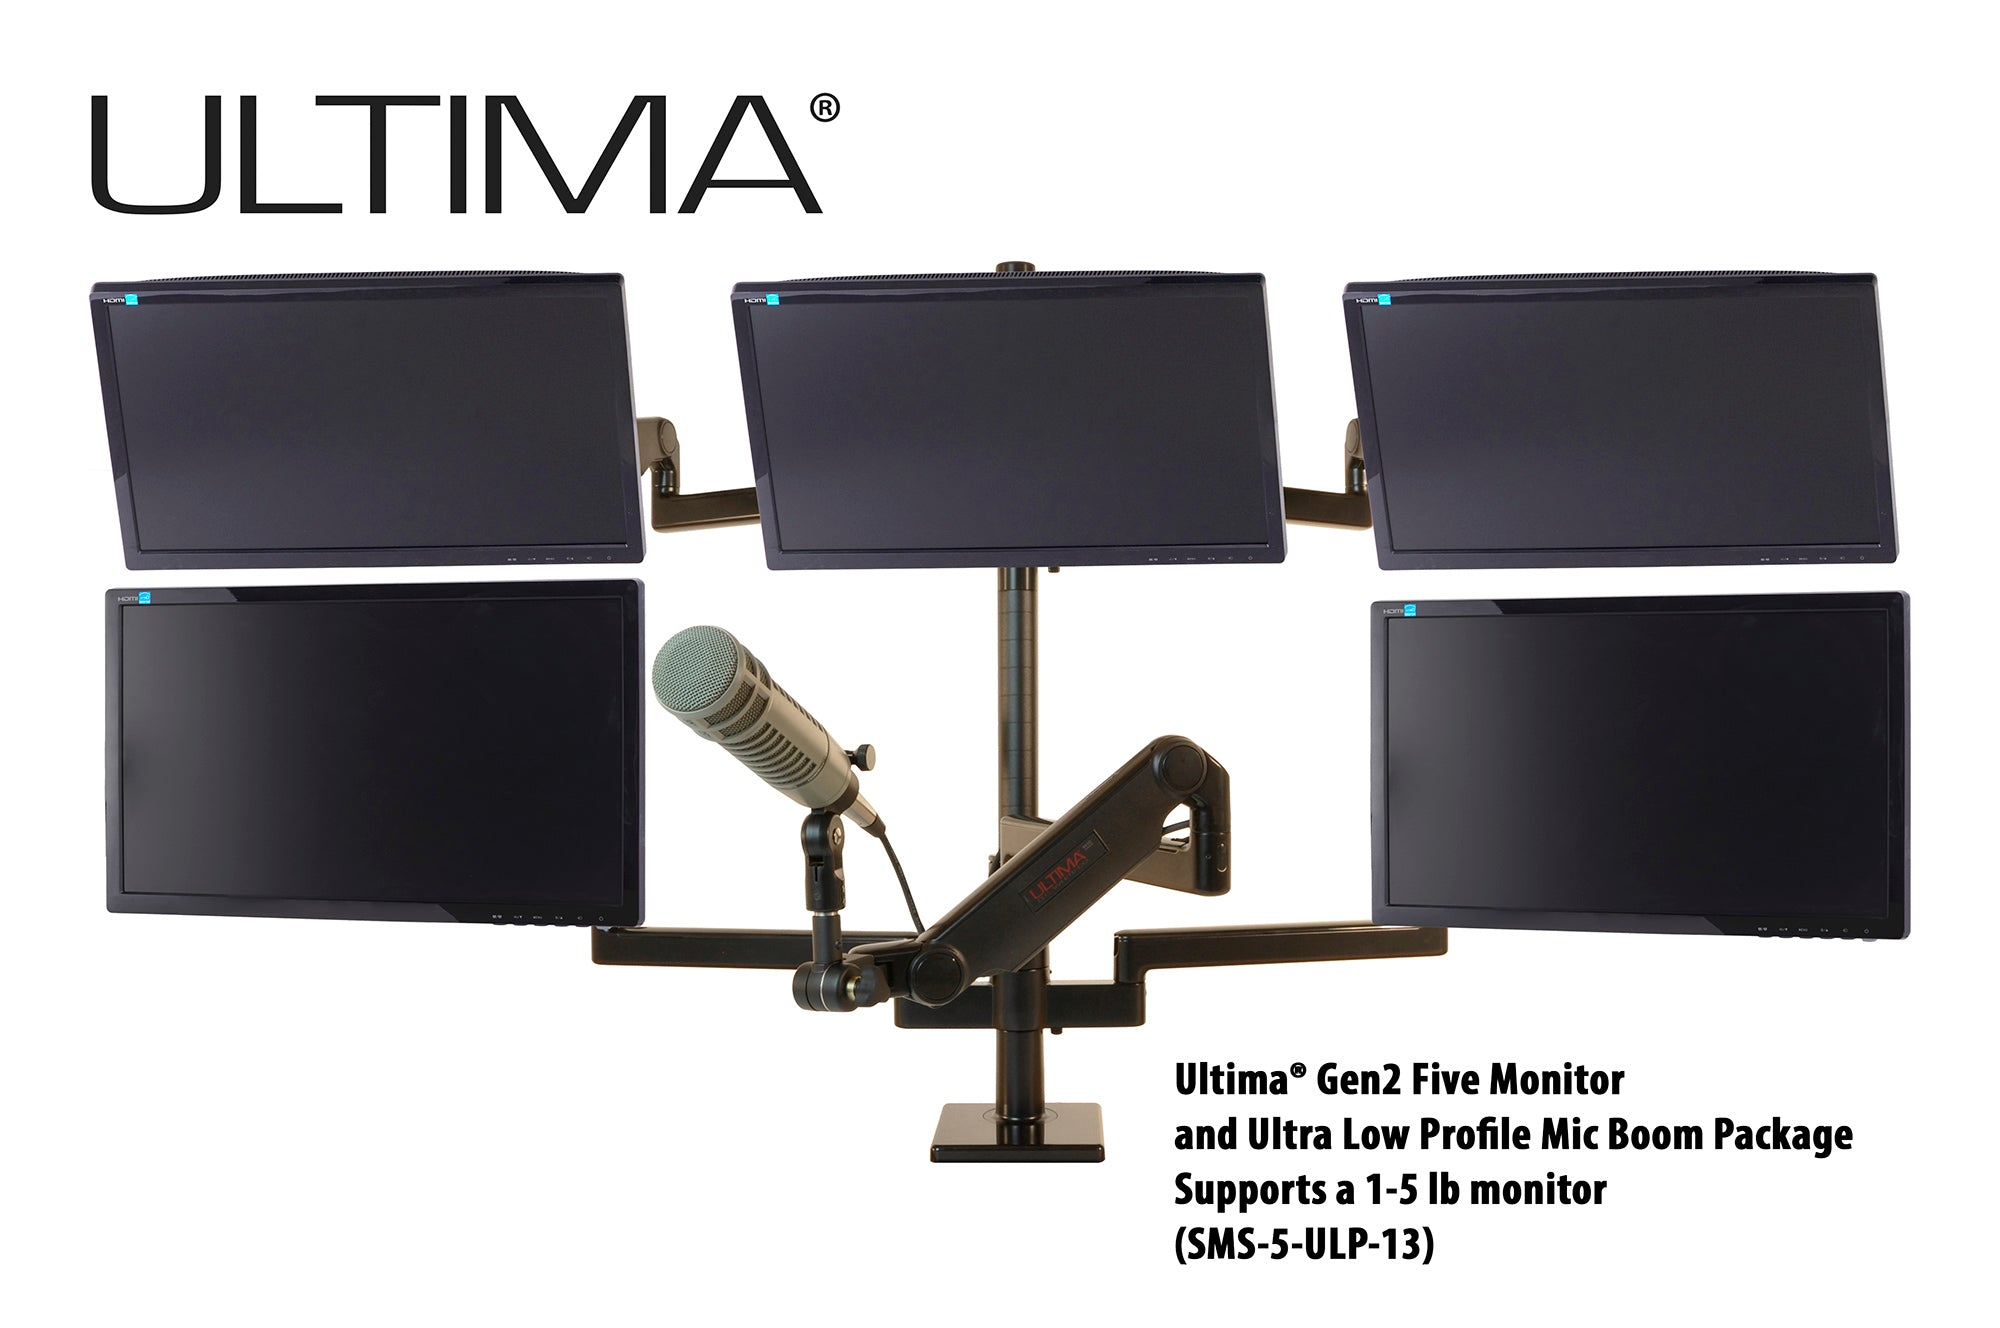 OC White SMS-5-ULP-13 & SMS-LD-5-ULP-13 Series ProBoom® Ultima® Gen2 Five Monitors and Low Profile Mic Boom SMS Package - 305broadcast